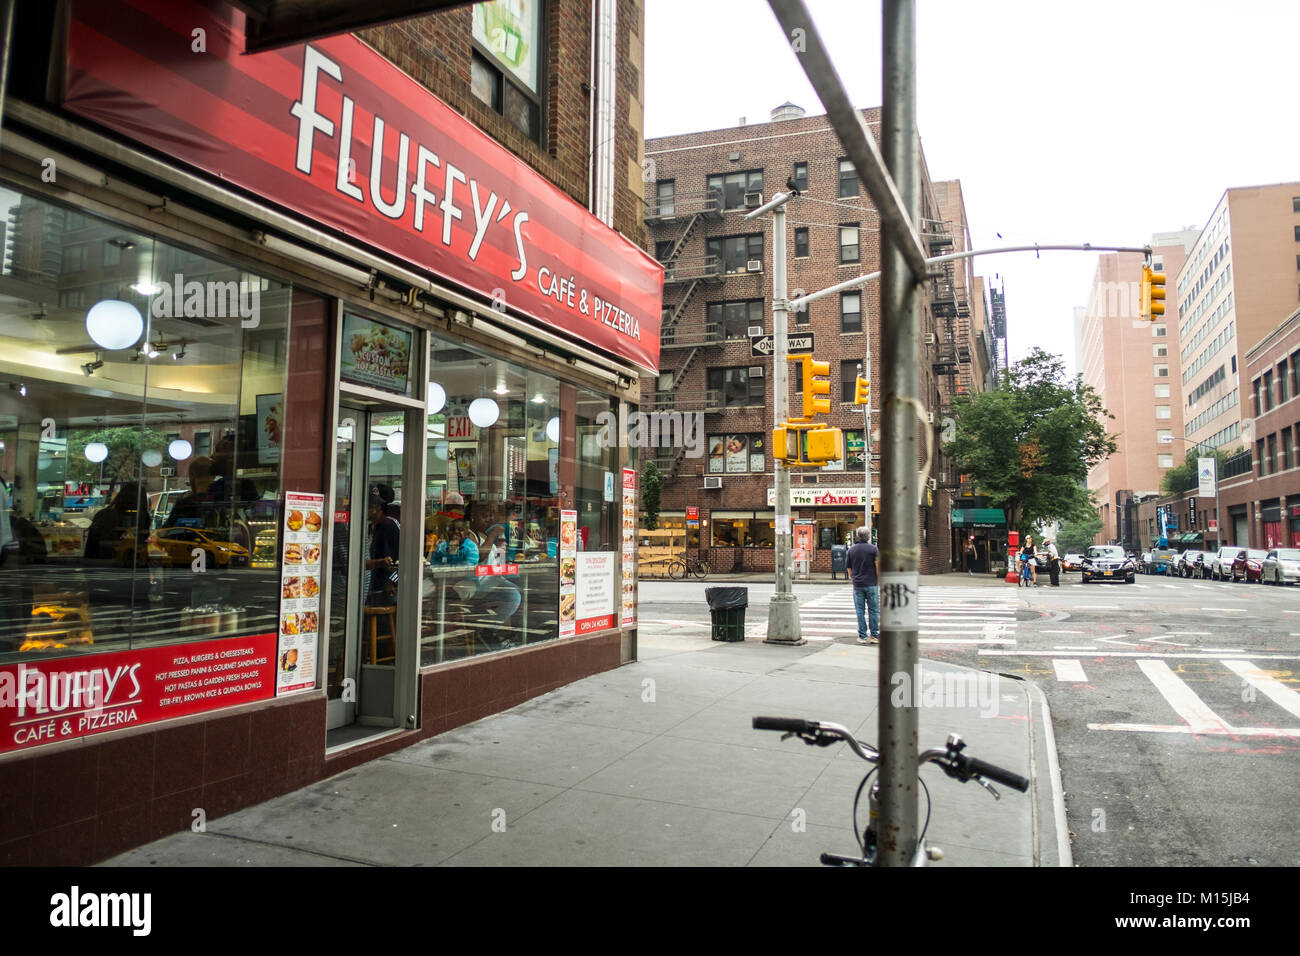 Fluffy's is a comfortable and reasonably priced joinyt at the corner of West 5th Street and 9th Avenue. Eateries - Stock Image